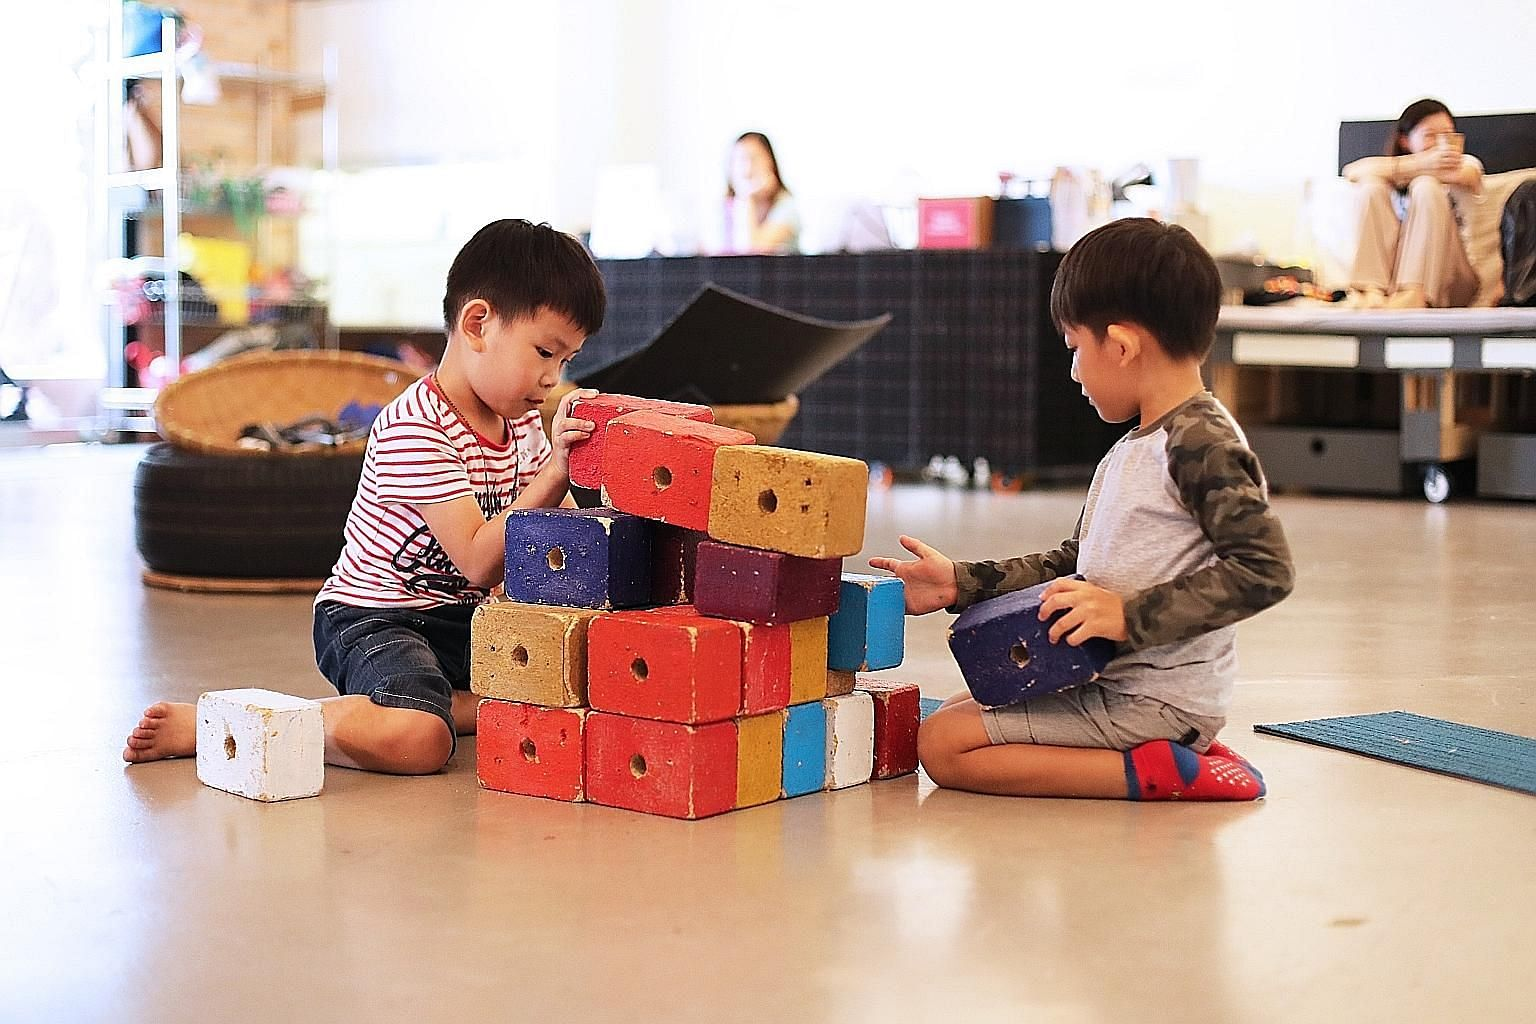 At Playeum, a children's centre for creativity, Eden Eyok (left), five, and Tan Hong Kai, six, can stack blocks or play with coloured tiles. Writer and researcher Hidayah Amin (centre, in black shirt) demonstrating sign language during an inclusive s